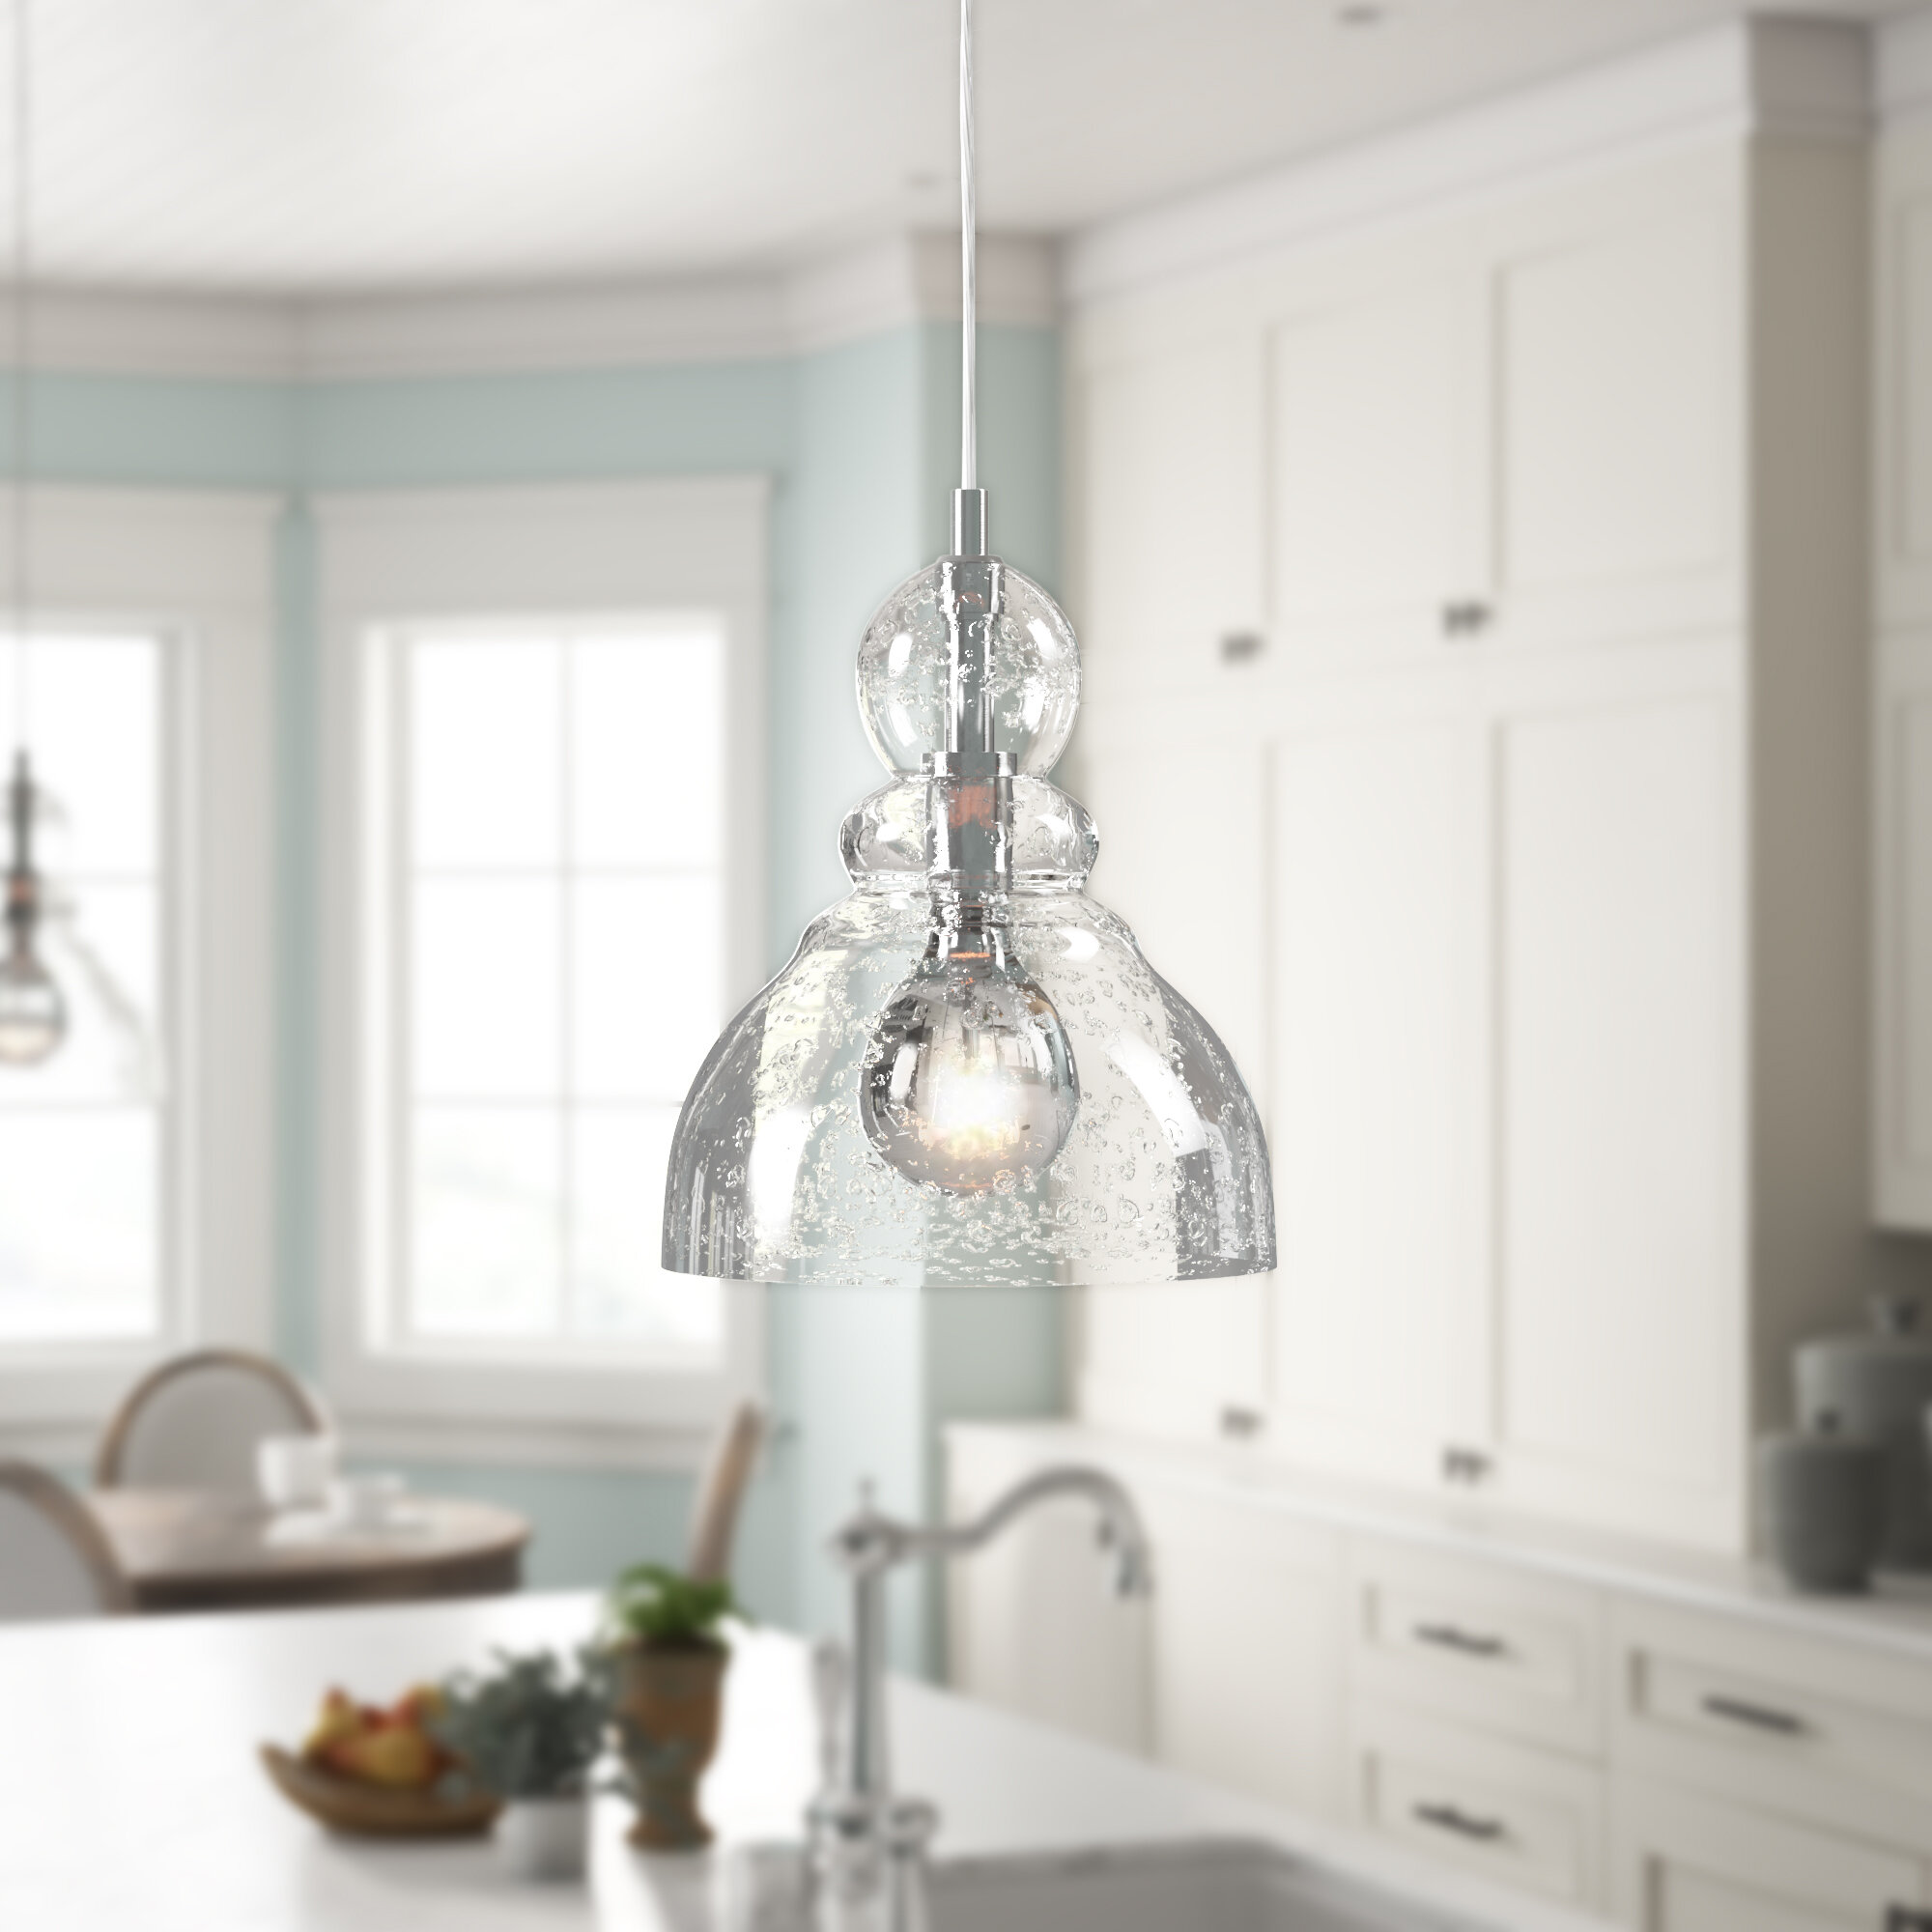 PENDANT CLEAR GLASS SHADE LIVING DINING ROOM KITCHEN ISLAND CHANDELIER 1 LIGHT